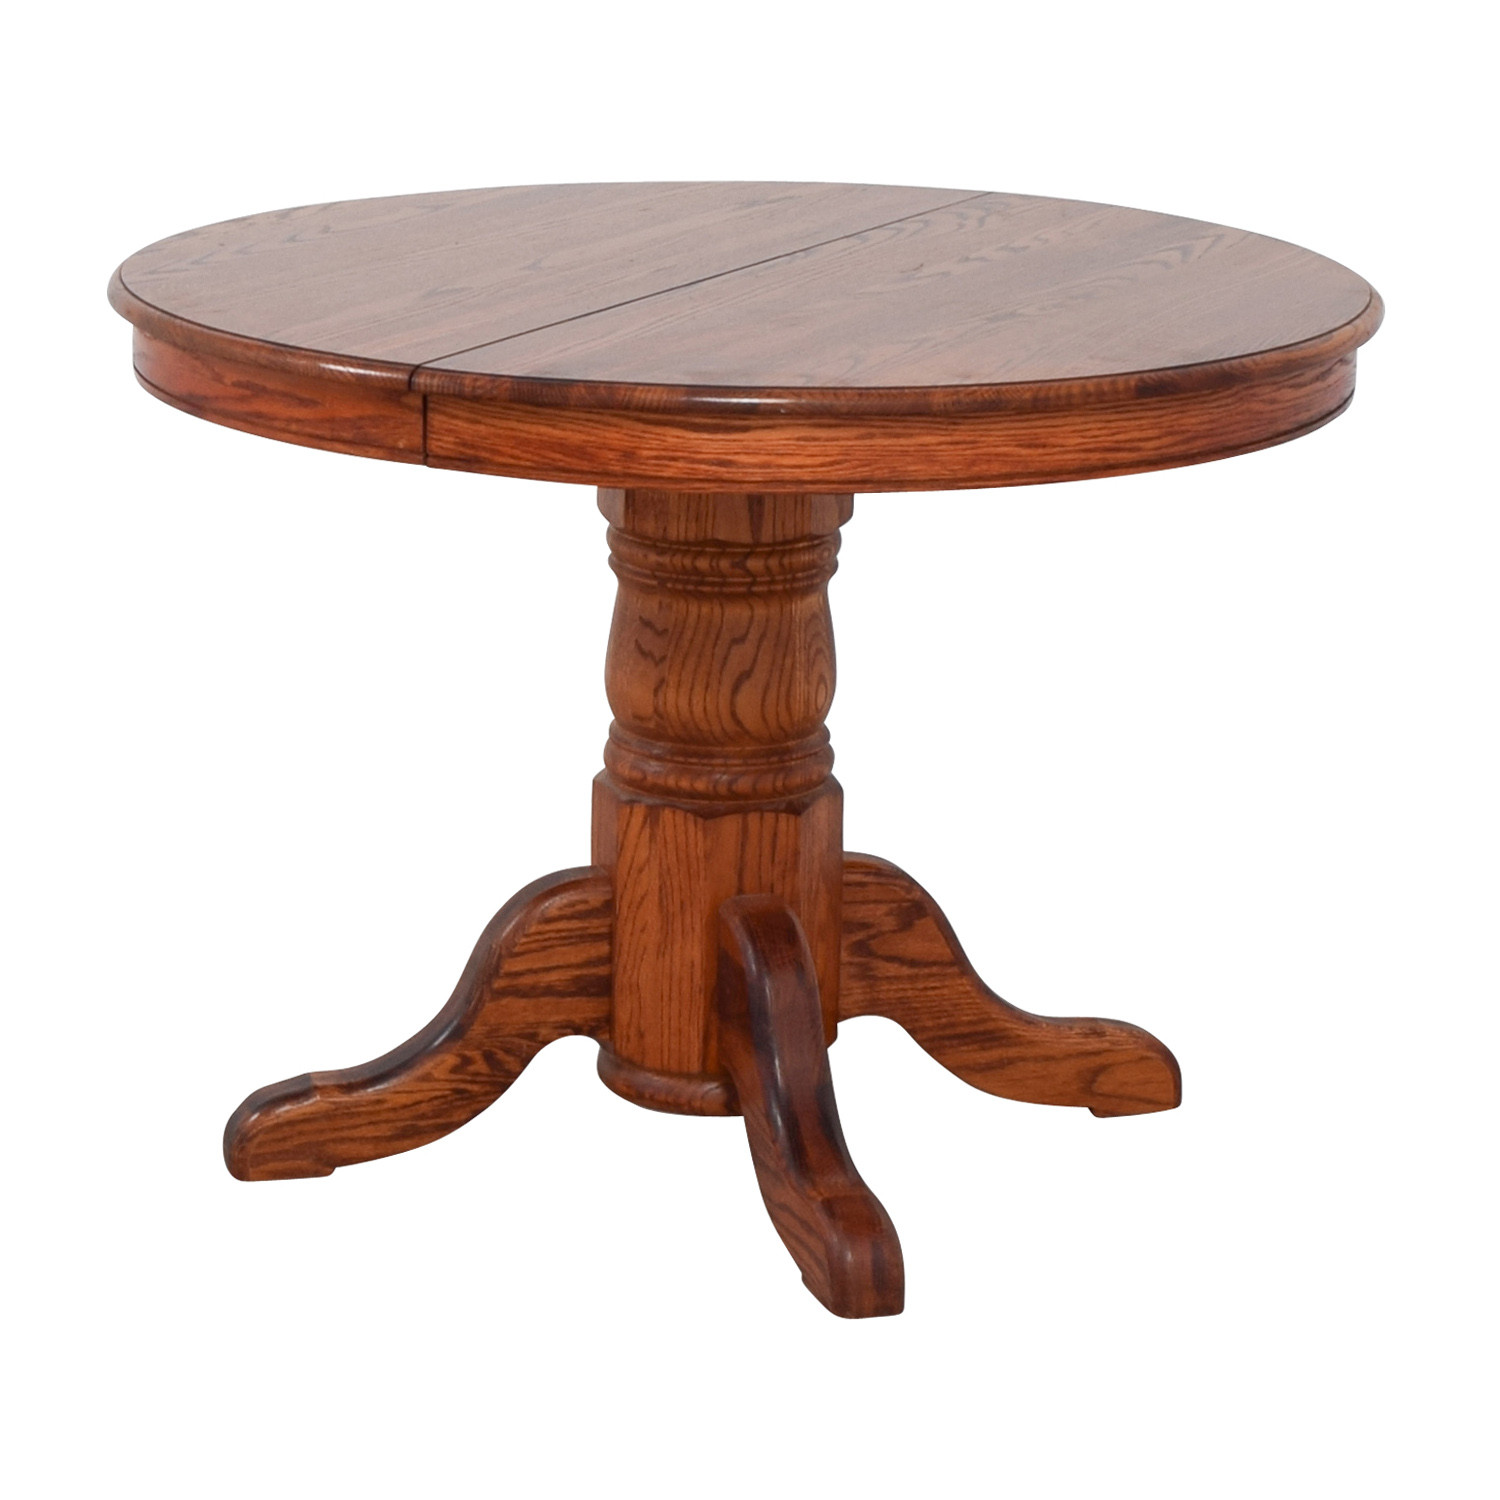 Best ideas about Round Extendable Dining Table . Save or Pin OFF Custom Extendable Oak Round Dining Table Tables Now.